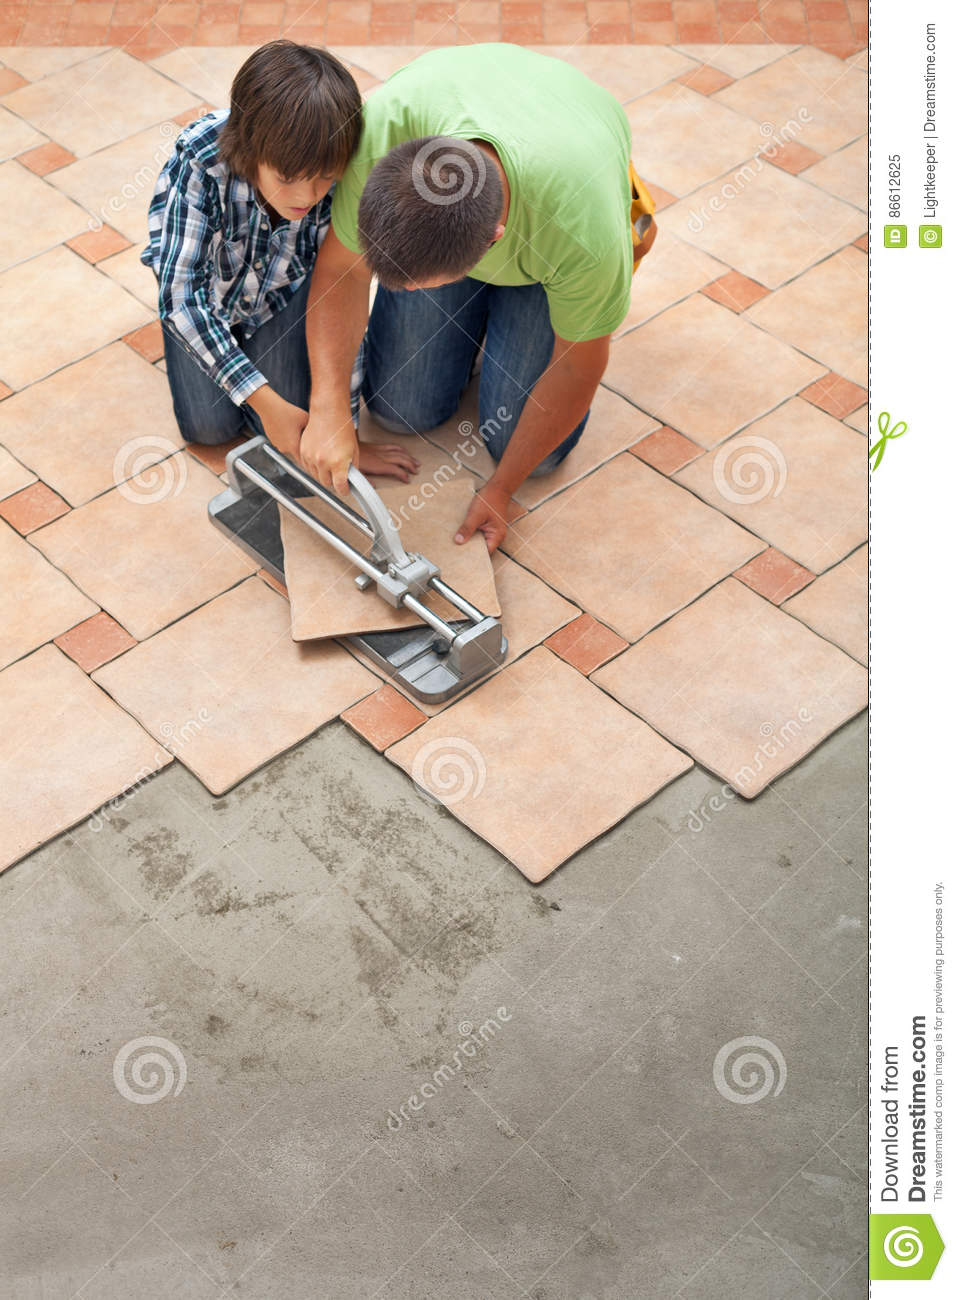 Young boy learning how to cut a ceramic floor tile stock image young boy learning how to cut a ceramic floor tile dailygadgetfo Image collections